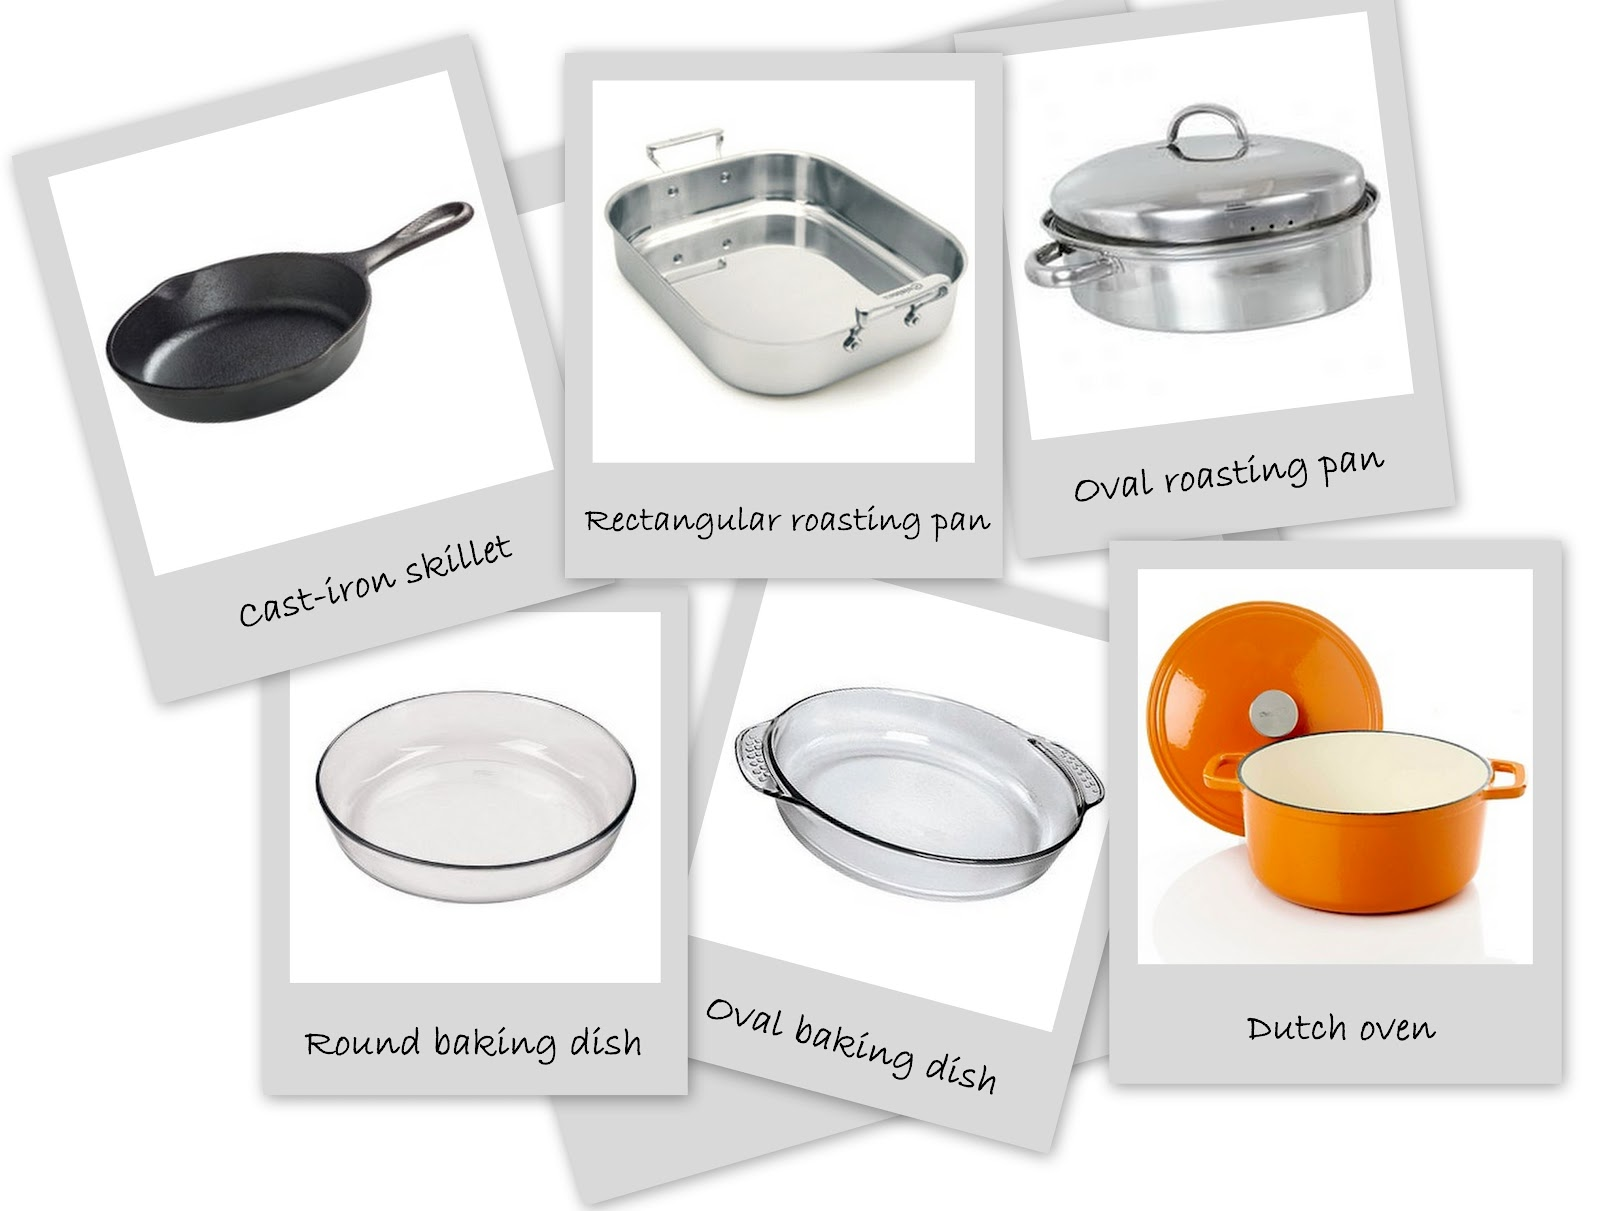 Cooking Equipment : ... fly in my soup!: Basic to Advanced Cooking Equipment - Pots and Pans